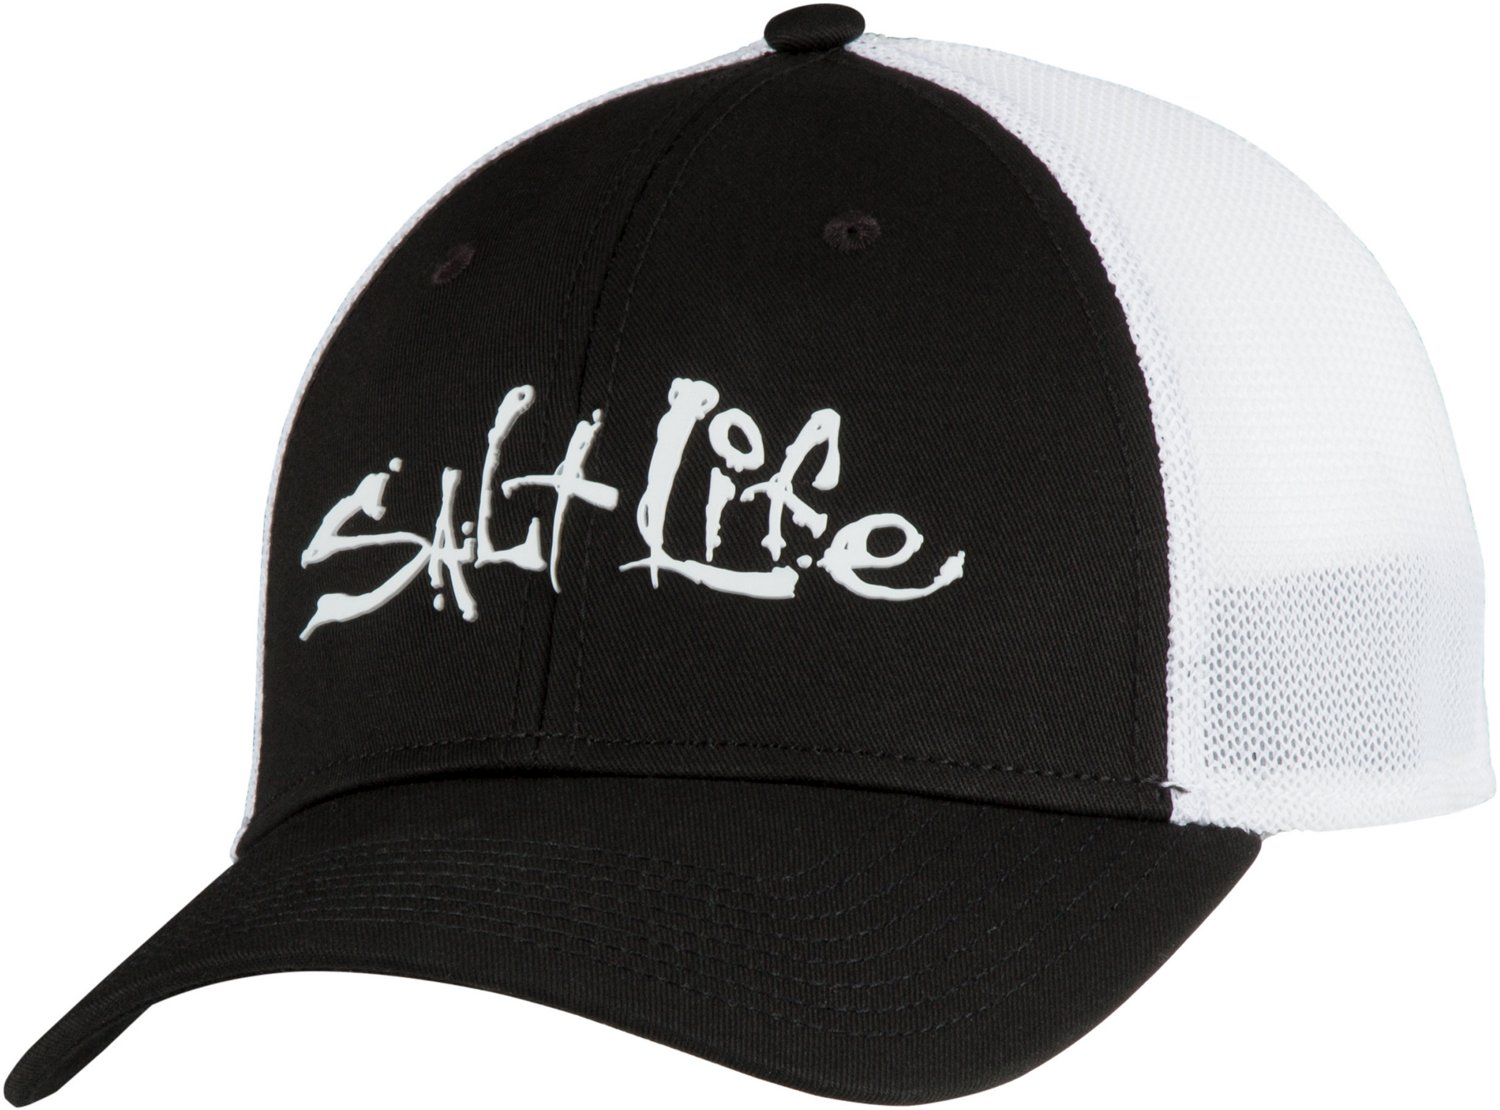 Display product reviews for Salt Life Men s Fish Dive Surf Ball Cap 5be346ecb16f